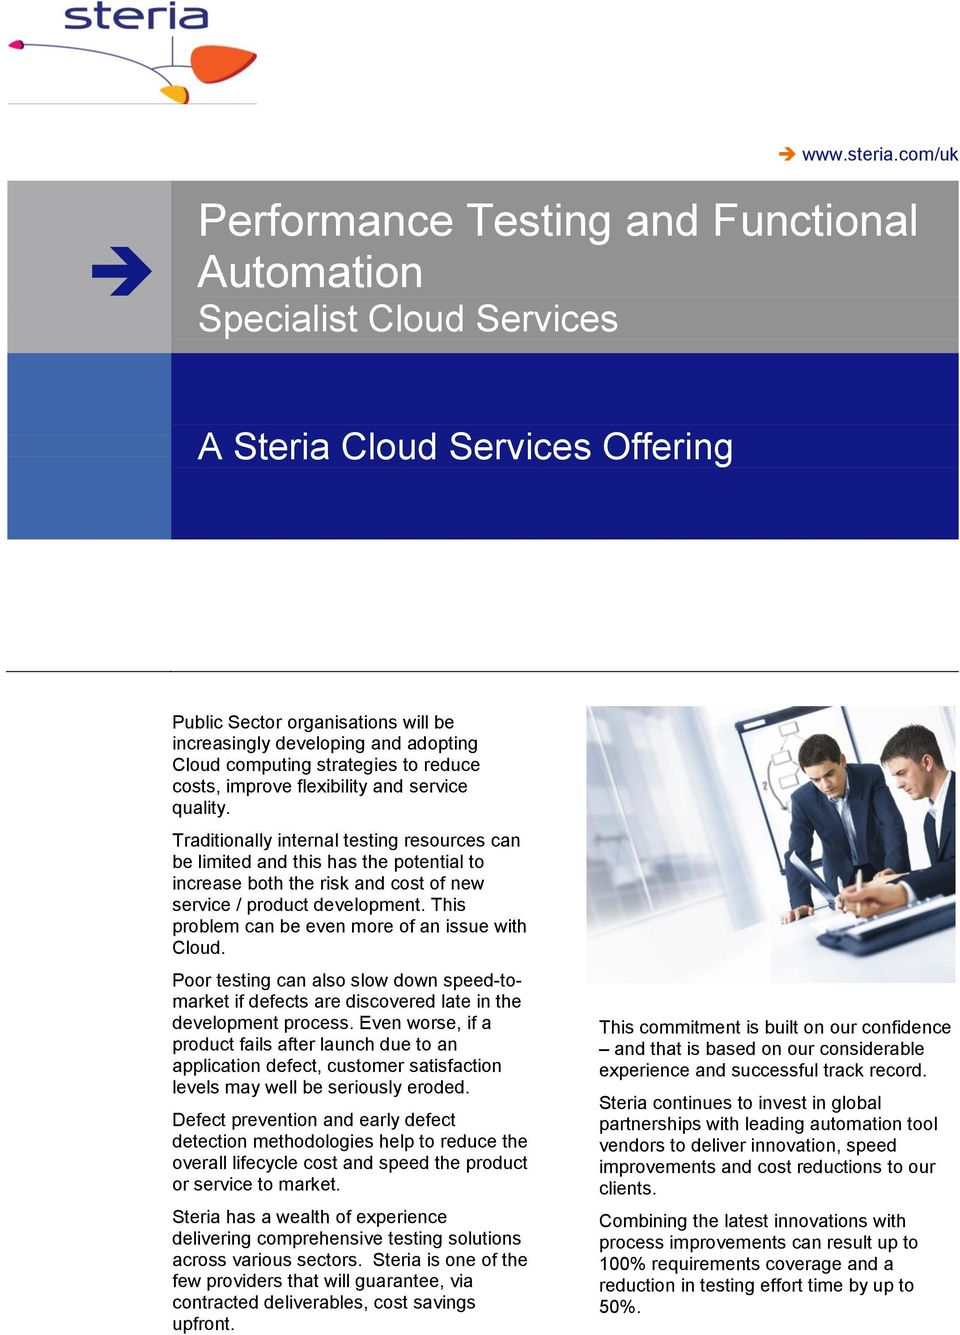 improve flexibility and service quality. Traditionally internal testing resources can be limited and this has the potential to increase both the risk and cost of new service / product development.